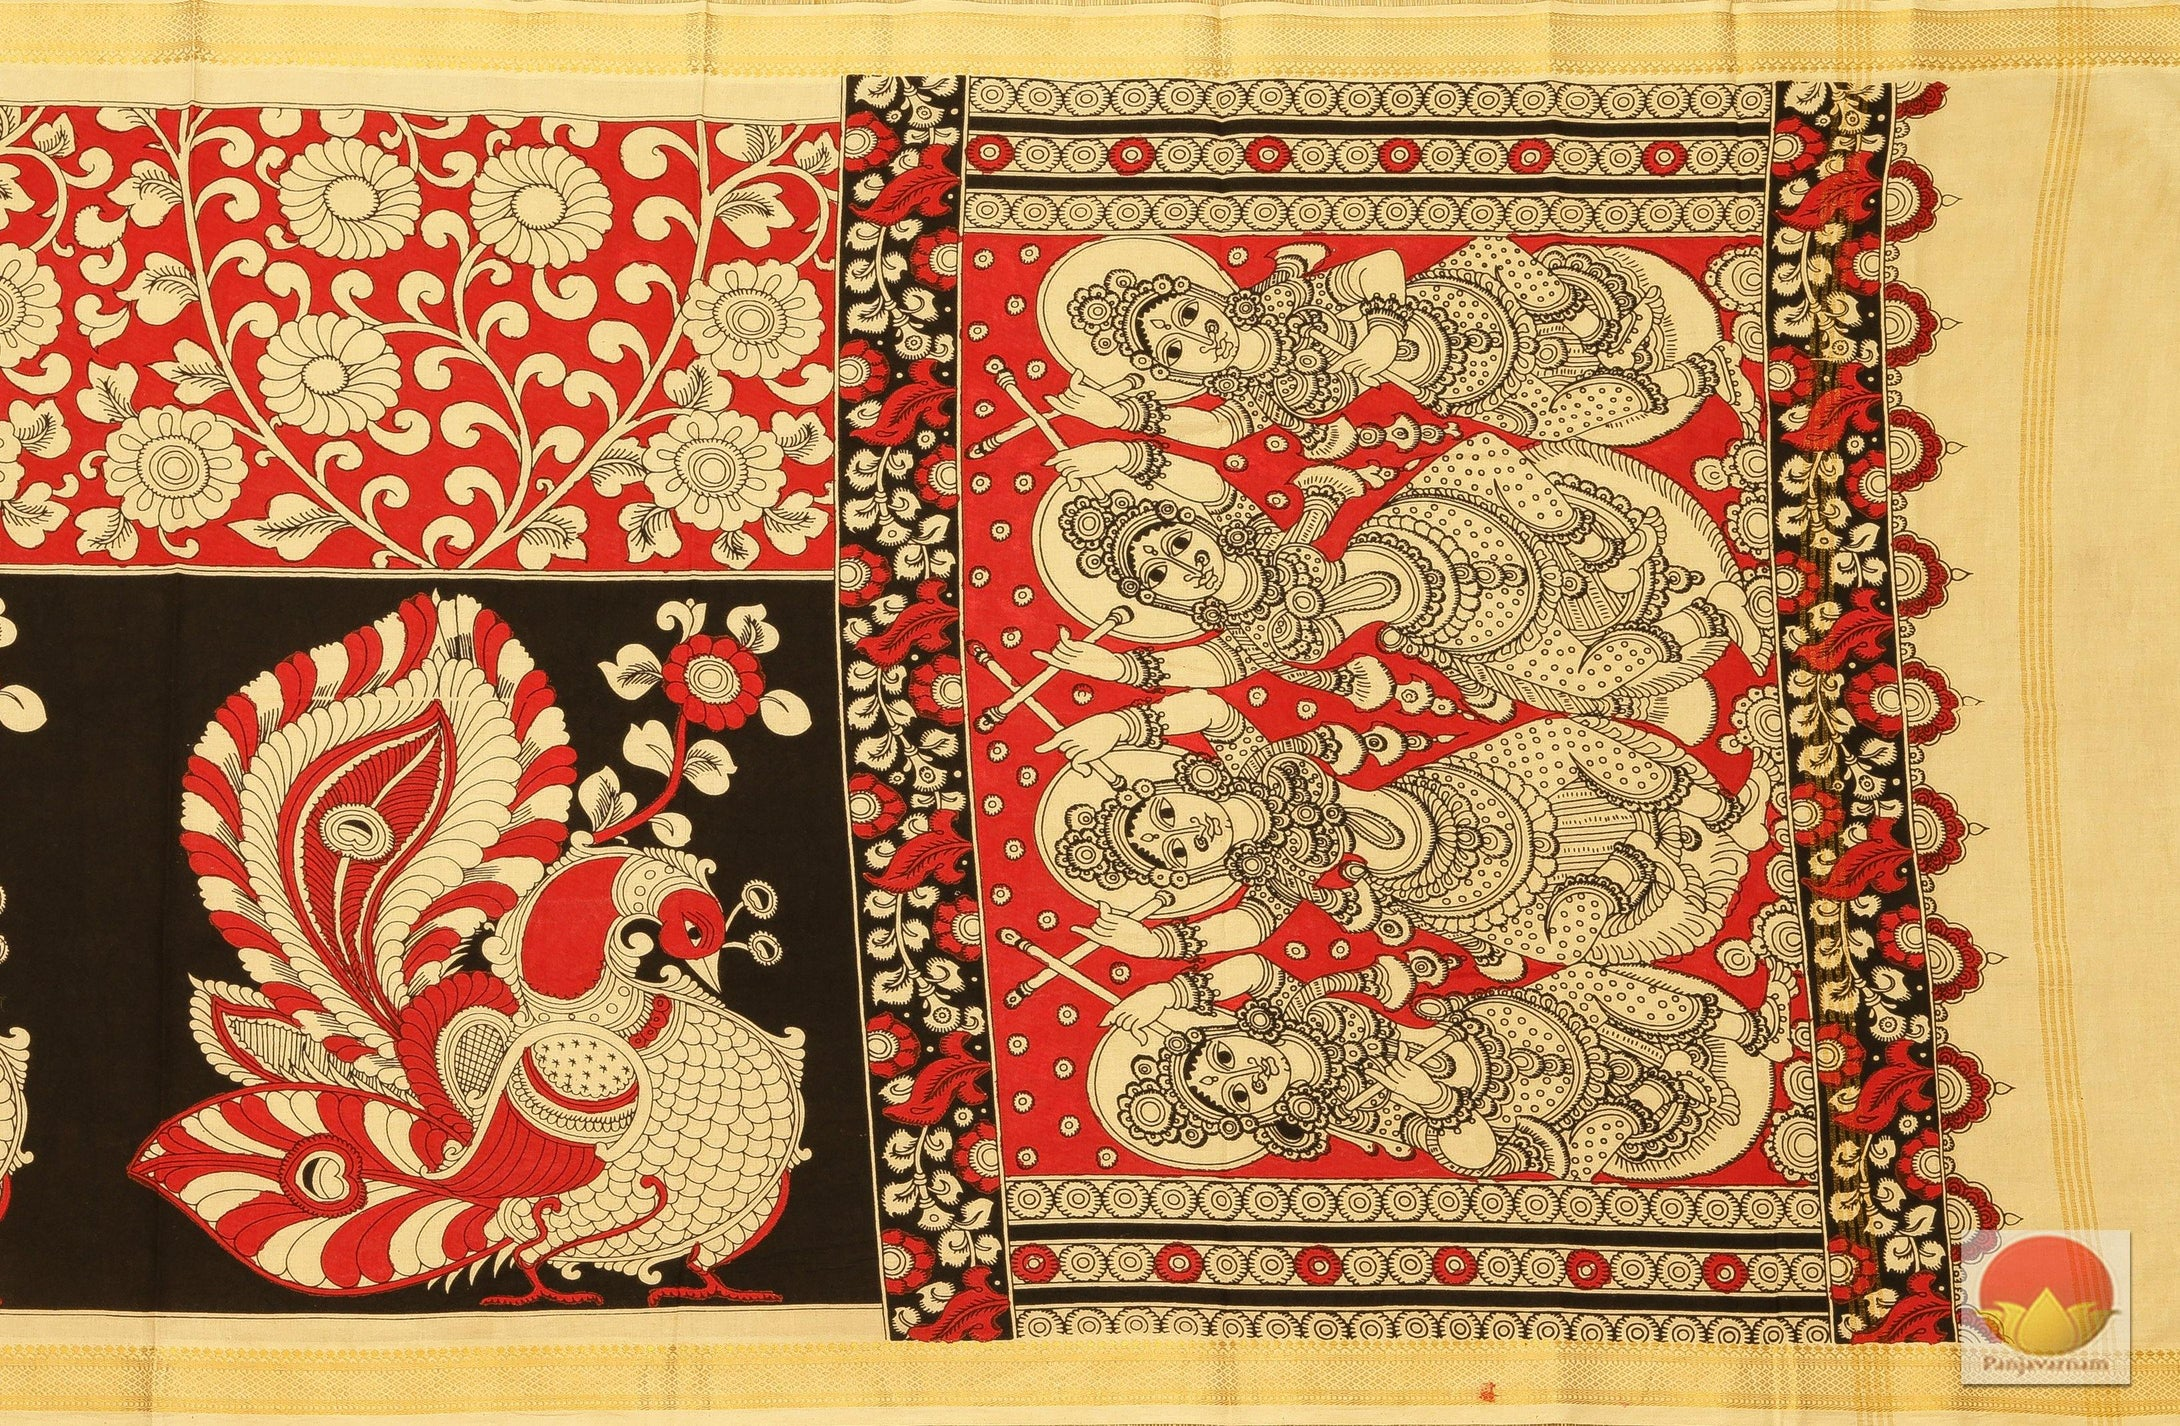 Handpainted Kalamkari Dupatta - Vegetable Dyes - KD 22